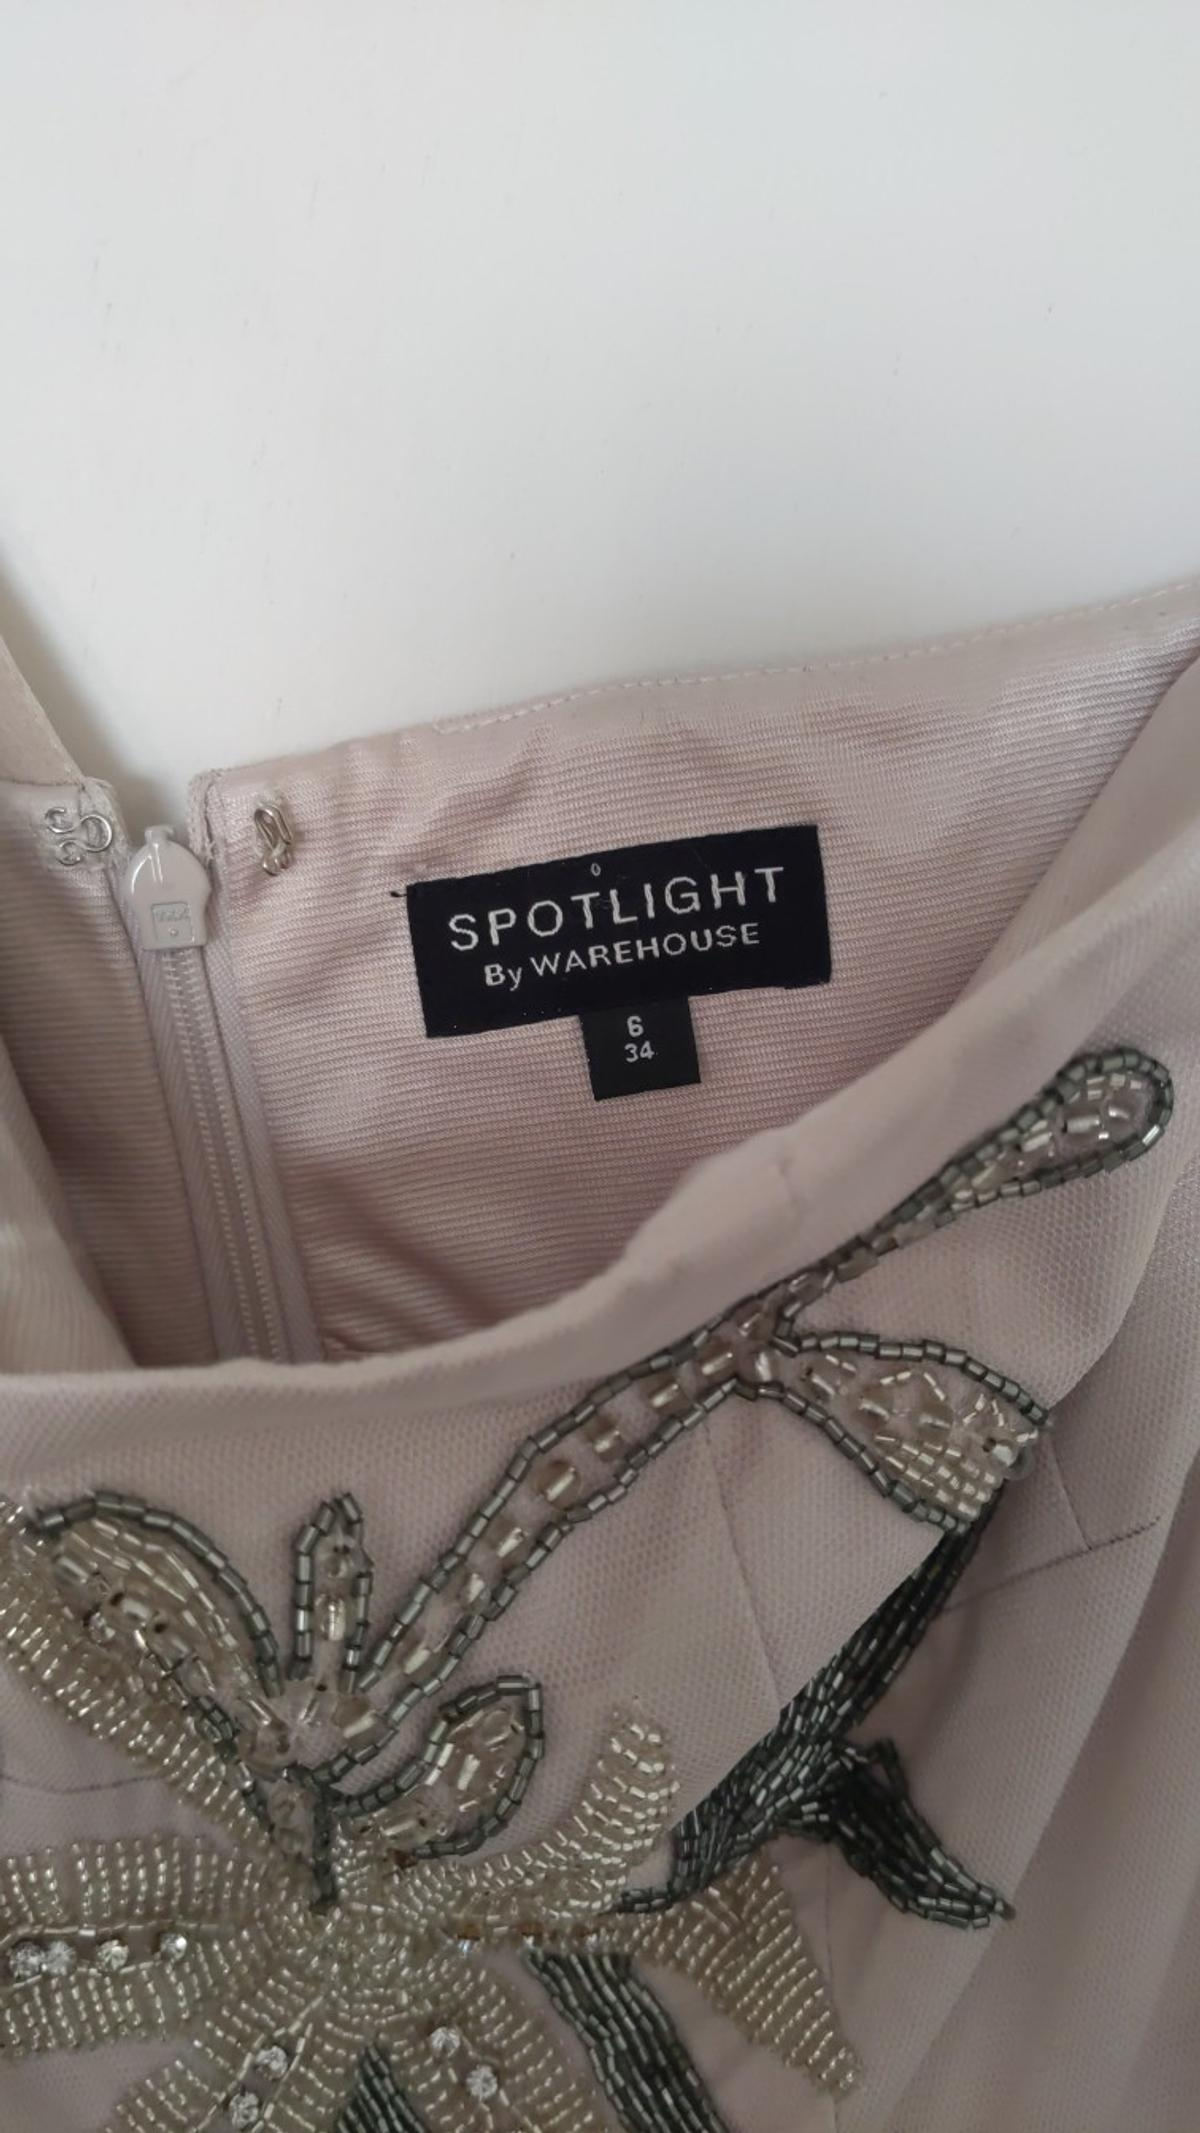 Stunning beaded dress by Spotlight at Warehouse, this is a size 6 and has only been worn once. Collection only although can arrange delivery at extra cost.